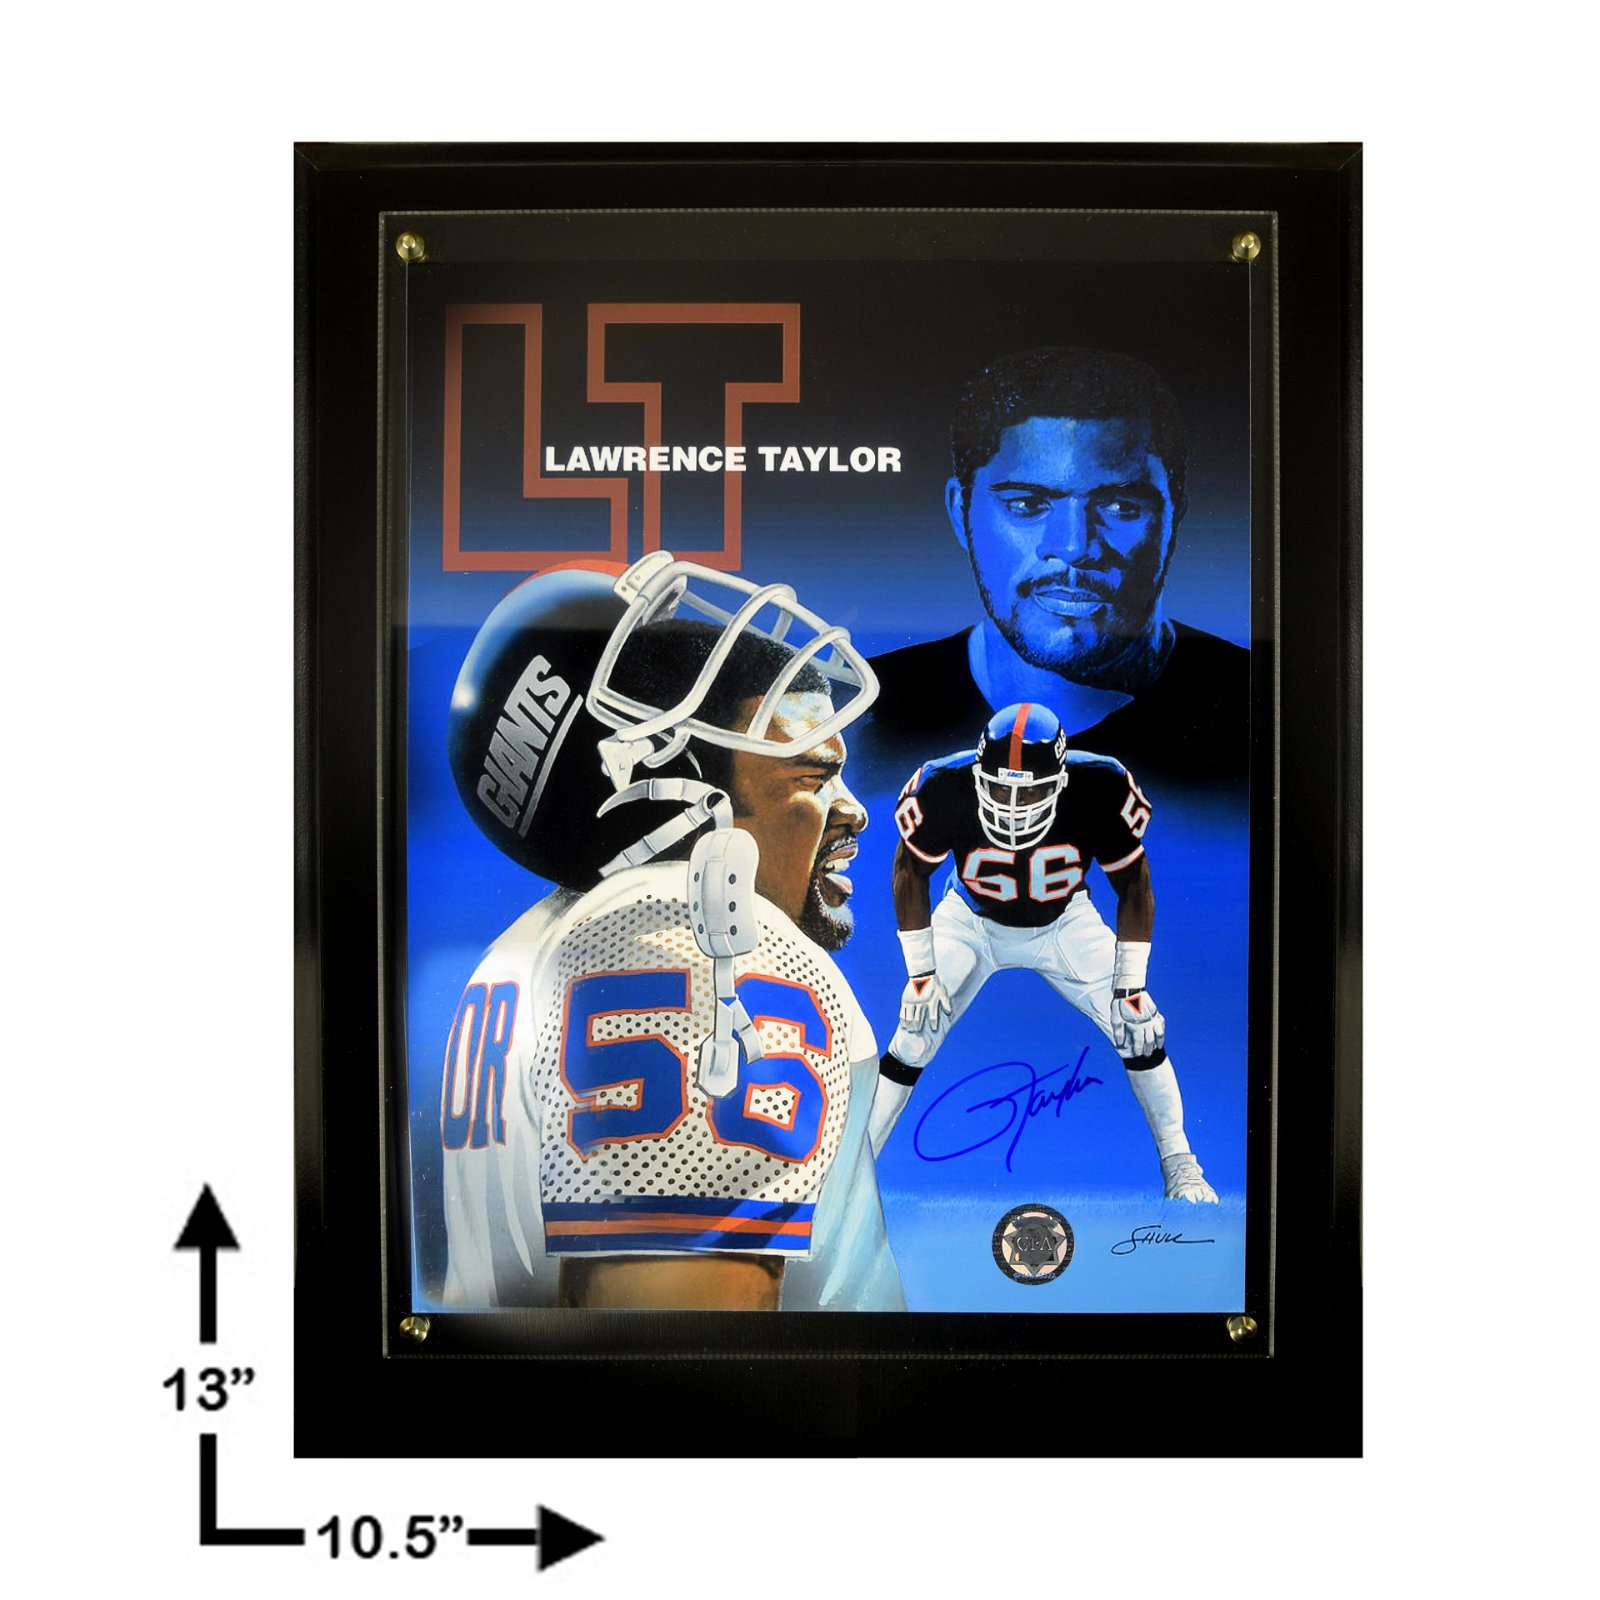 Lawrence Taylor New York Giants Signed 8x10 Plaque